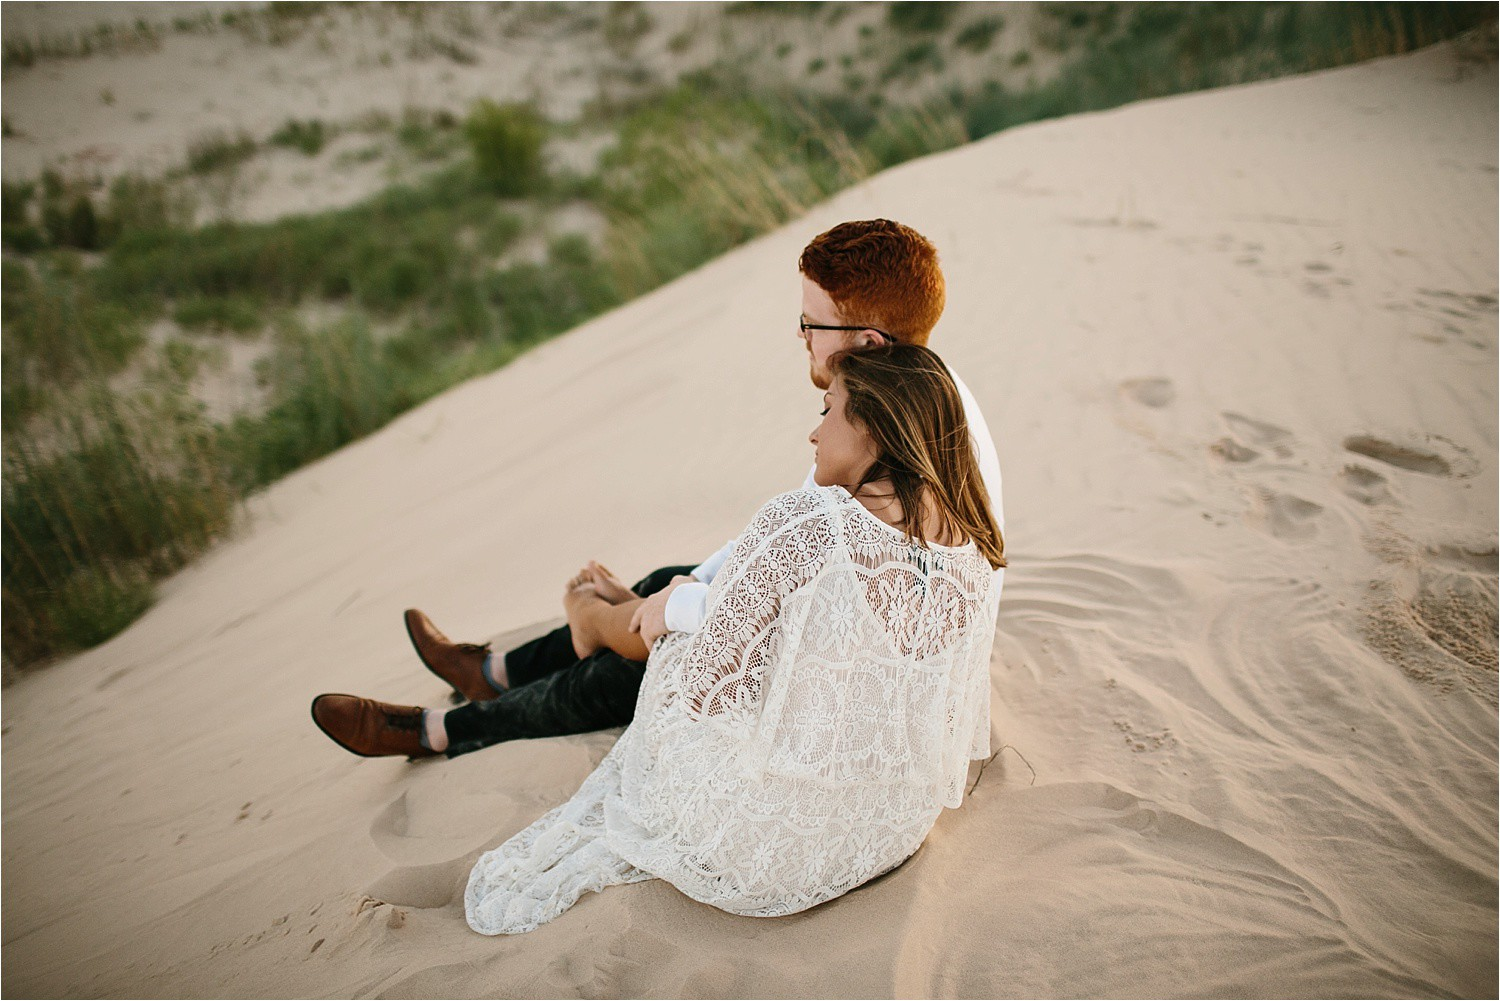 Lauren + Jacob __ a monahans sand dunes engagement session at sunrise by North Texas Wedding Photographer, Rachel Meagan Photography __ 14